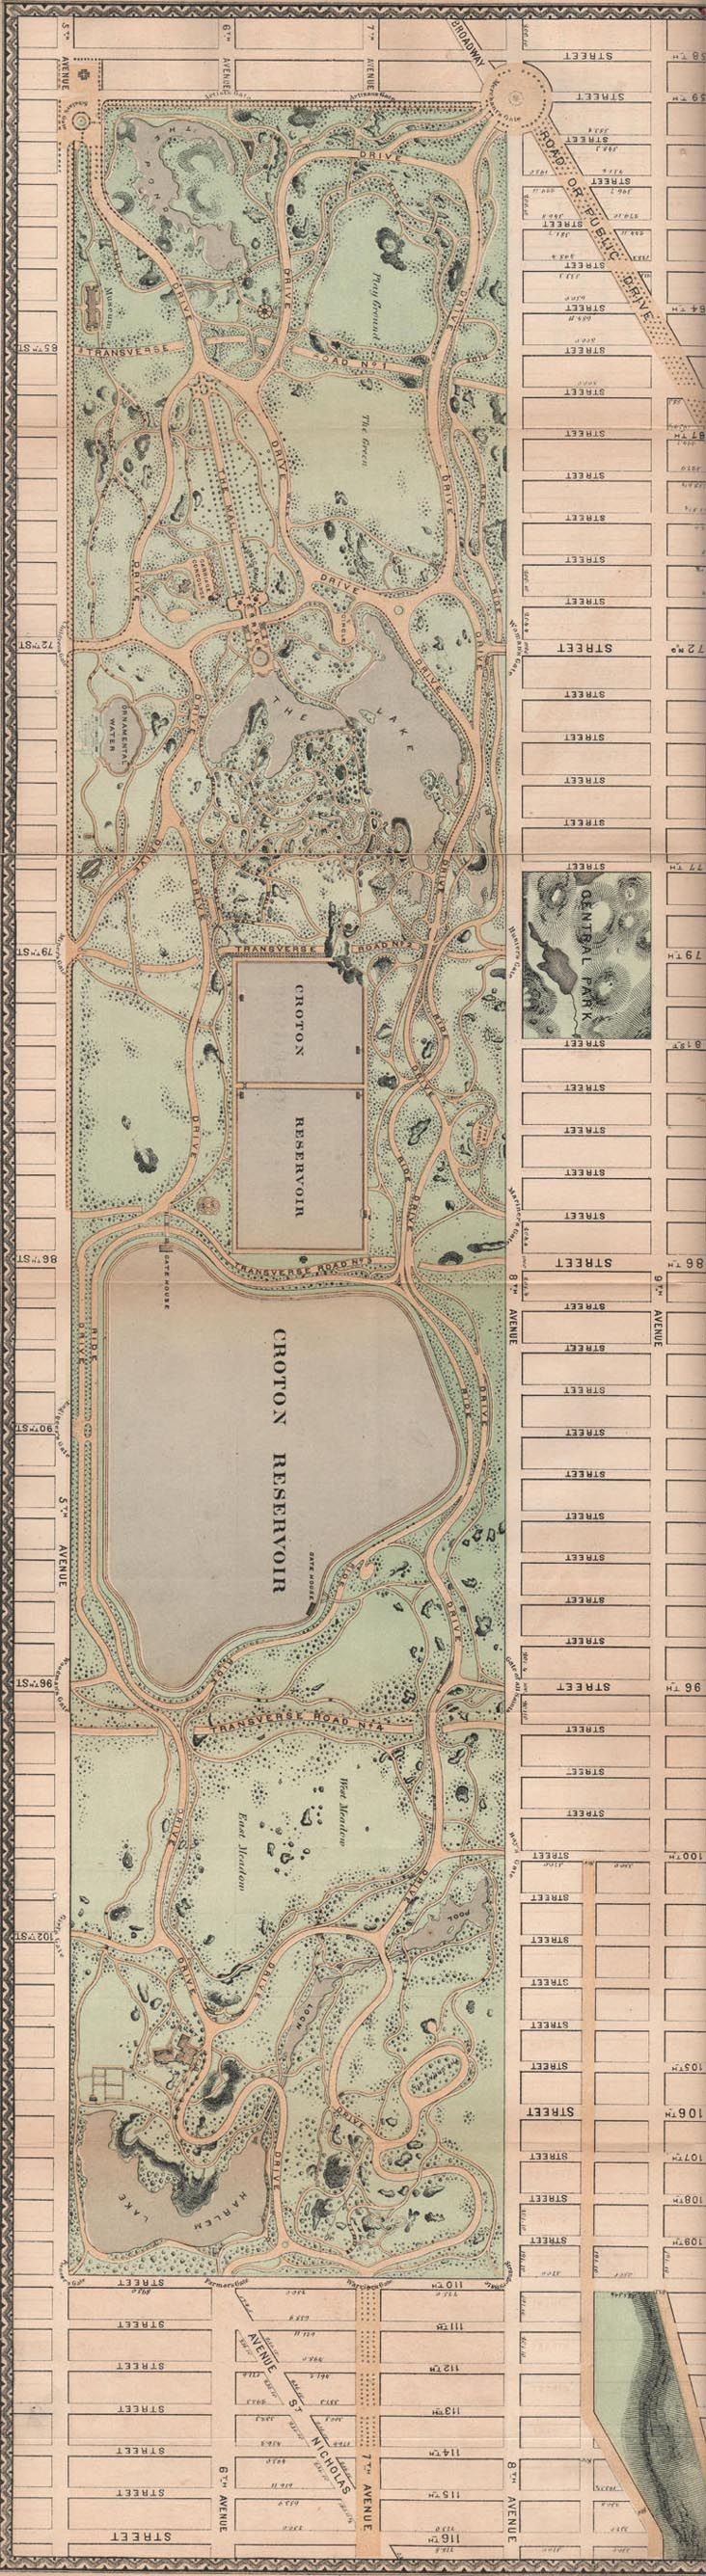 1868 Beautiful Central Park map - just gorgeous. :o)